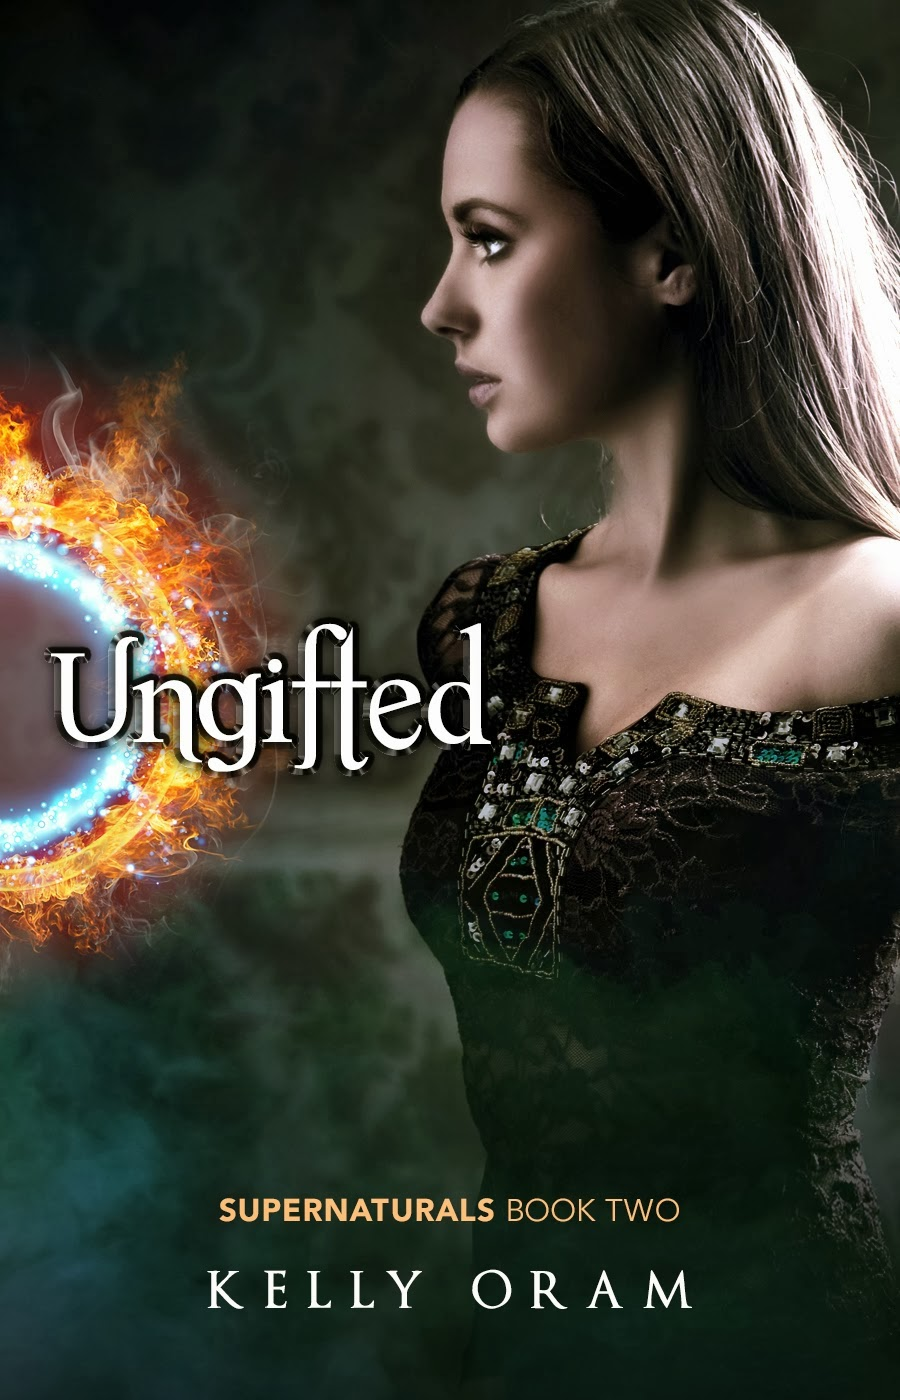 http://www.shedreamsinfiction.com/2014/02/blog-tour-review-ungifted-by-kelly-oram.html